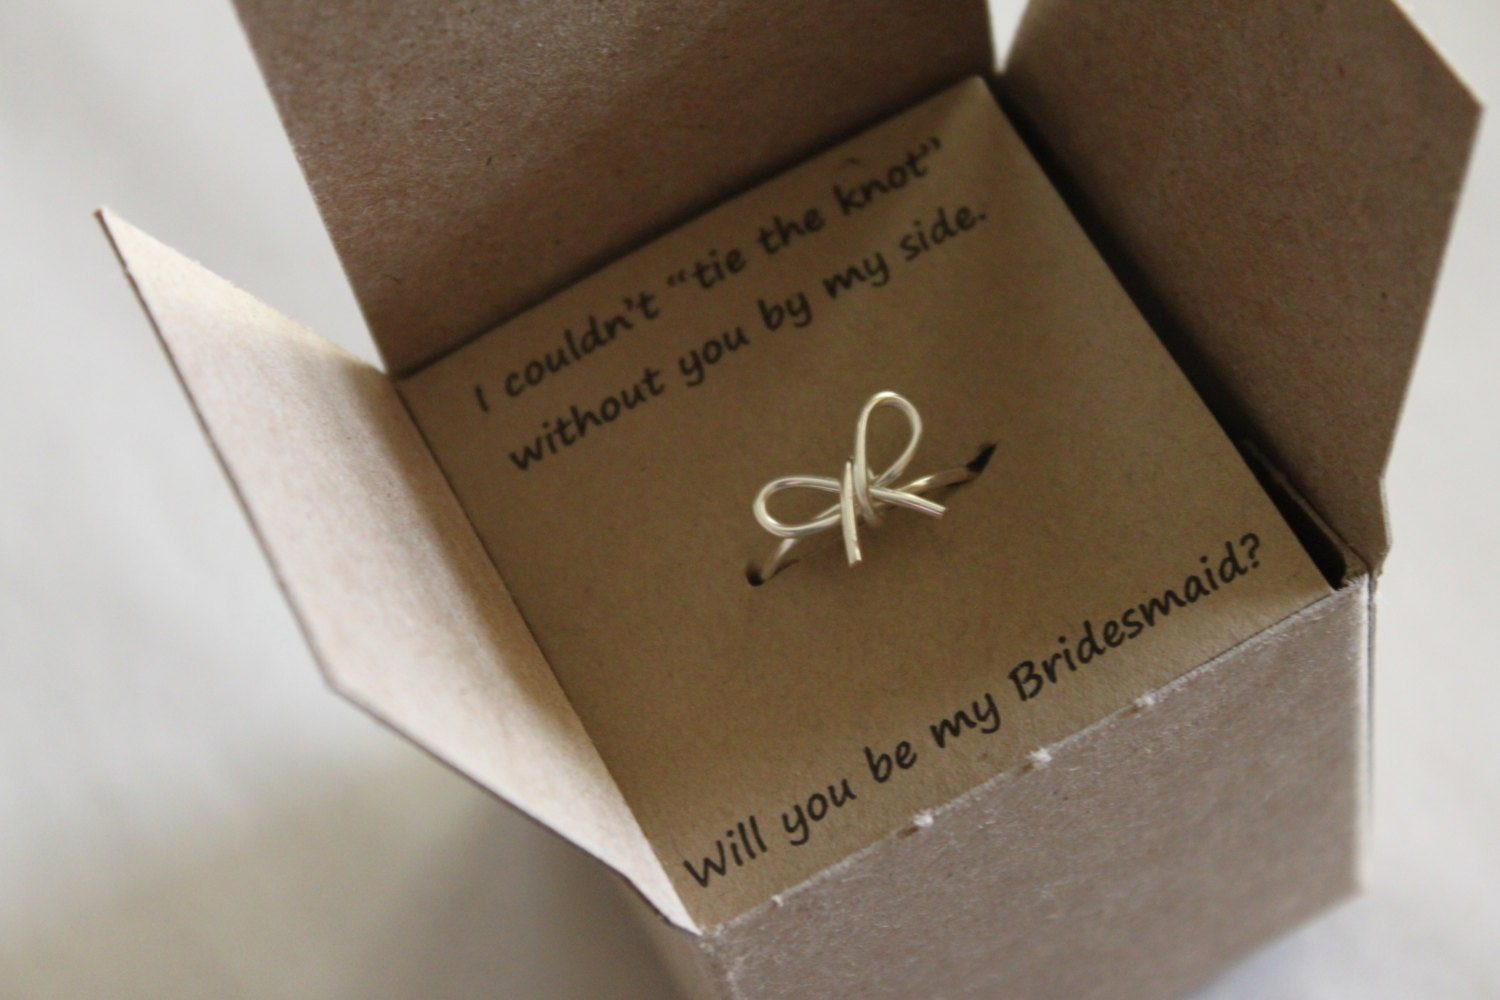 The Knot Wedding Gift List : the Knot Ring, Will You Be My B ridesmaid Gift, Maid of Honor, Wedding ...